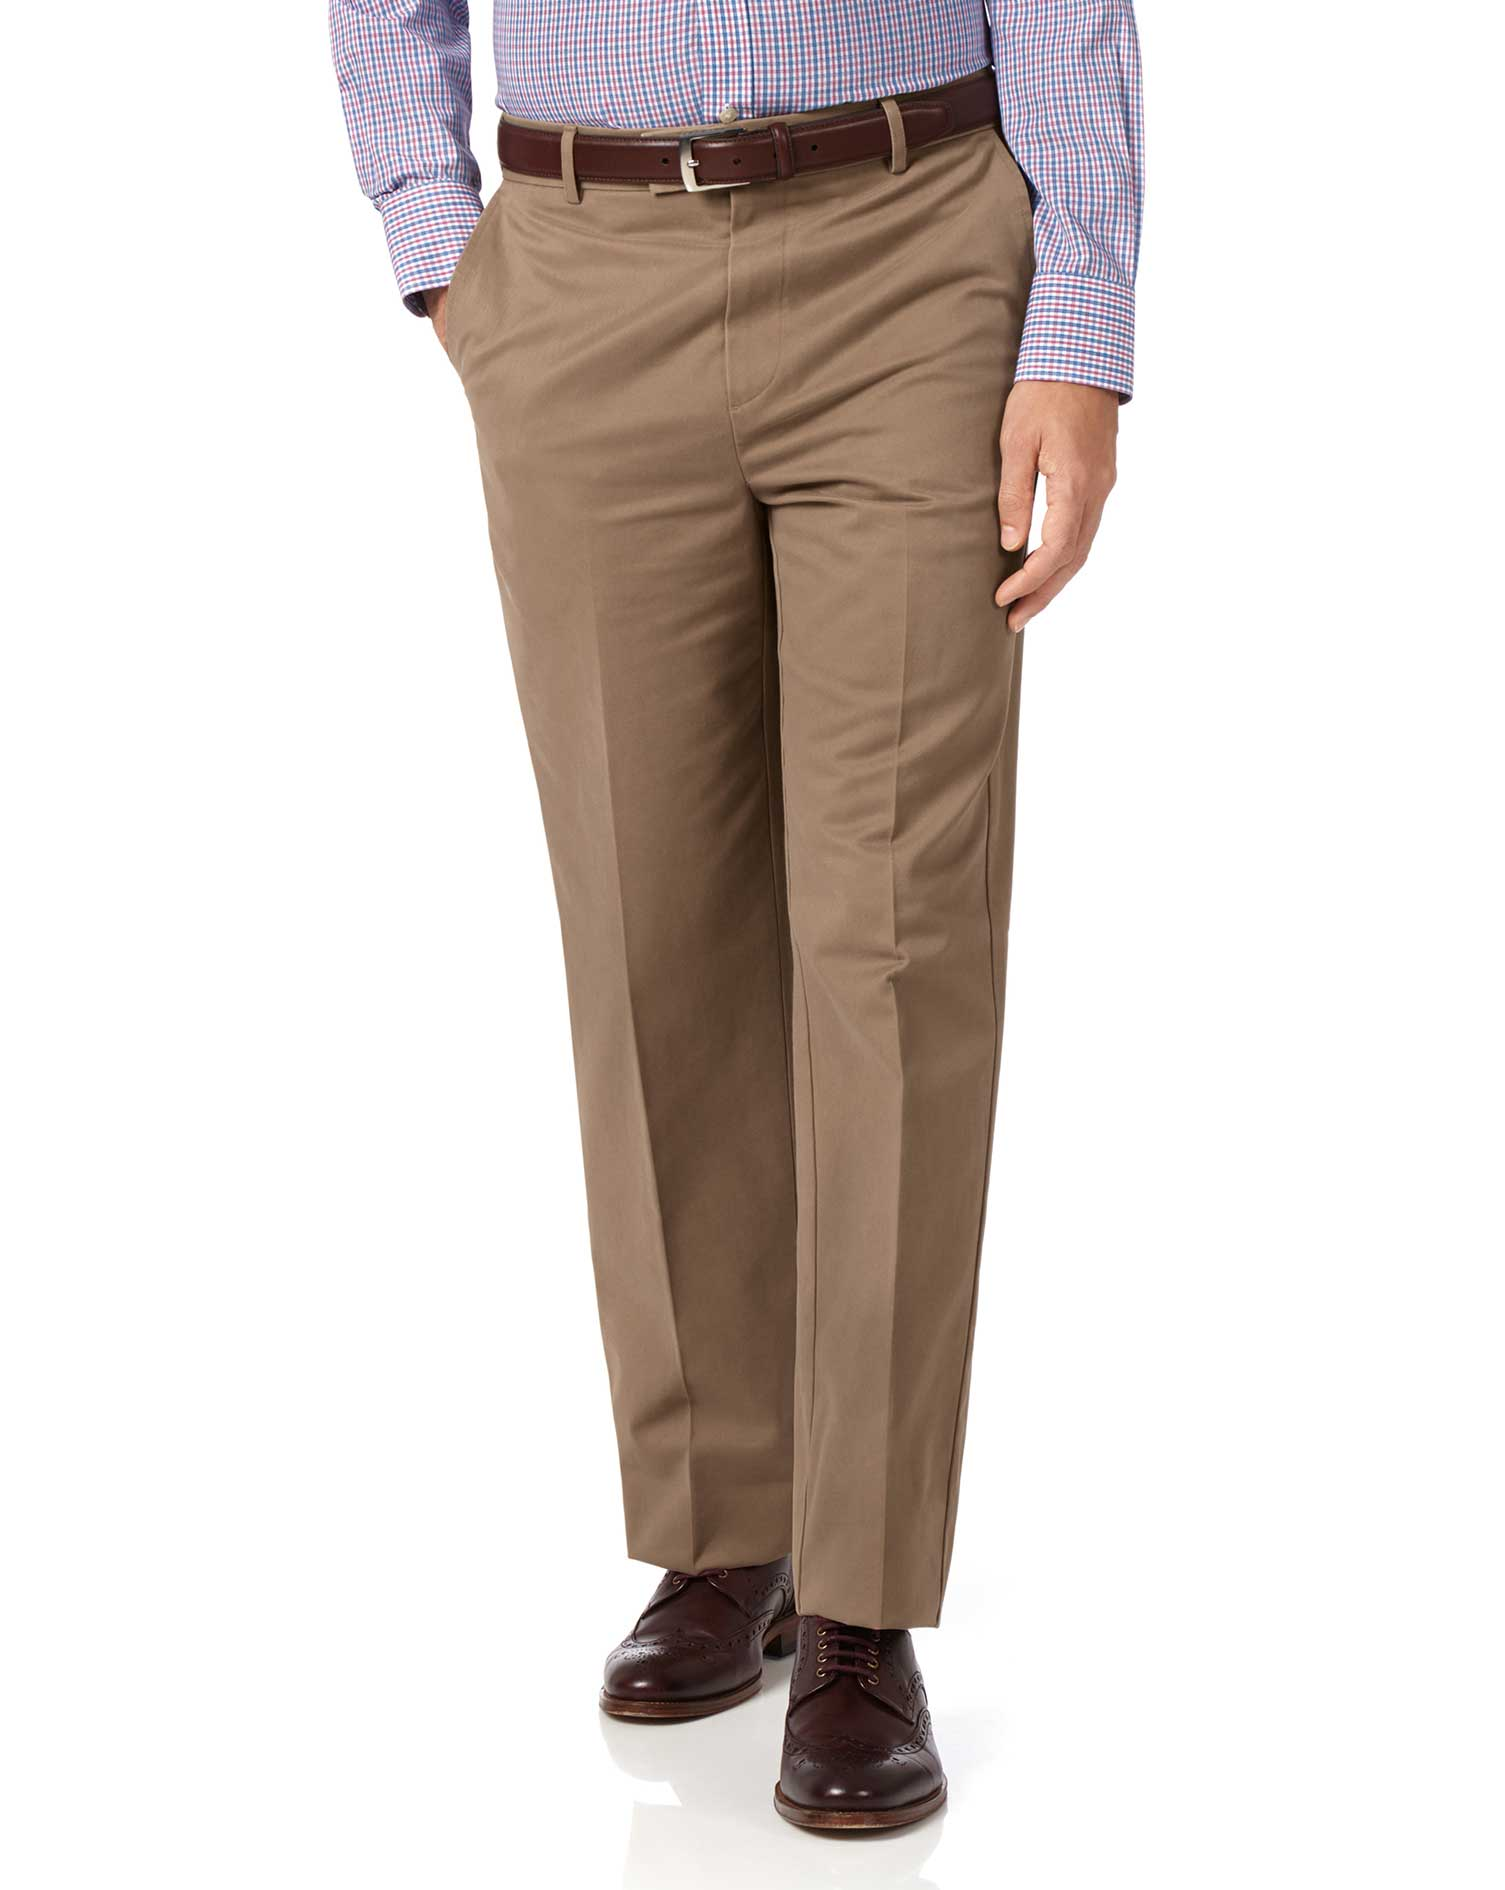 Tan Classic Fit Flat Front Non-Iron Cotton Chino Trousers Size W34 L34 by Charles Tyrwhitt